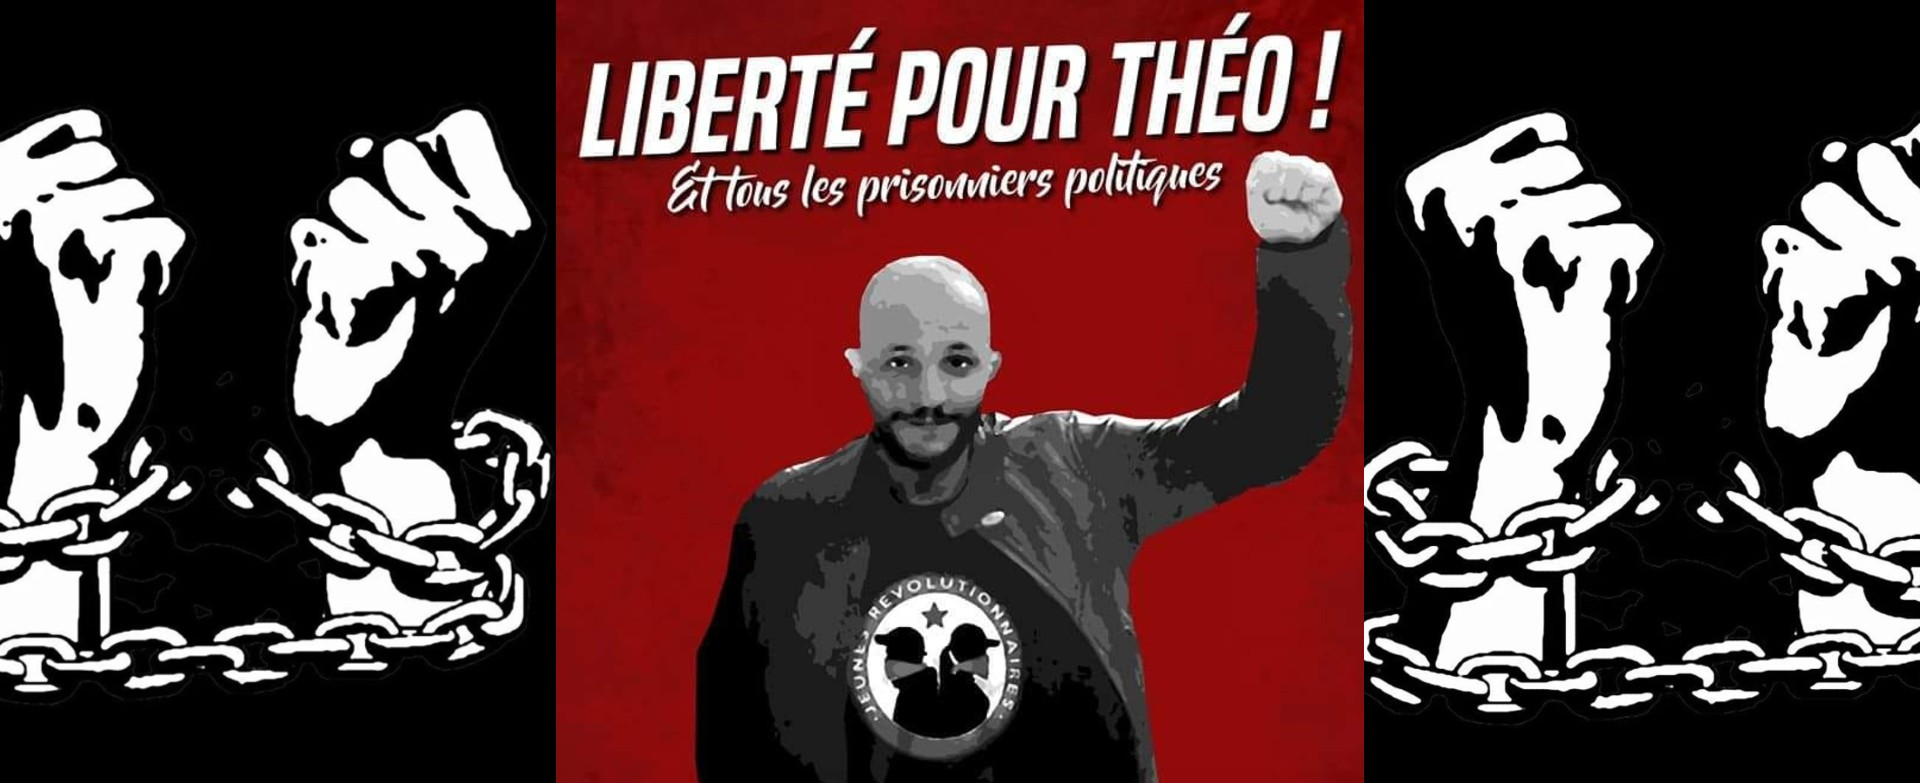 FRANCE: Comrade Théo Released from Prison